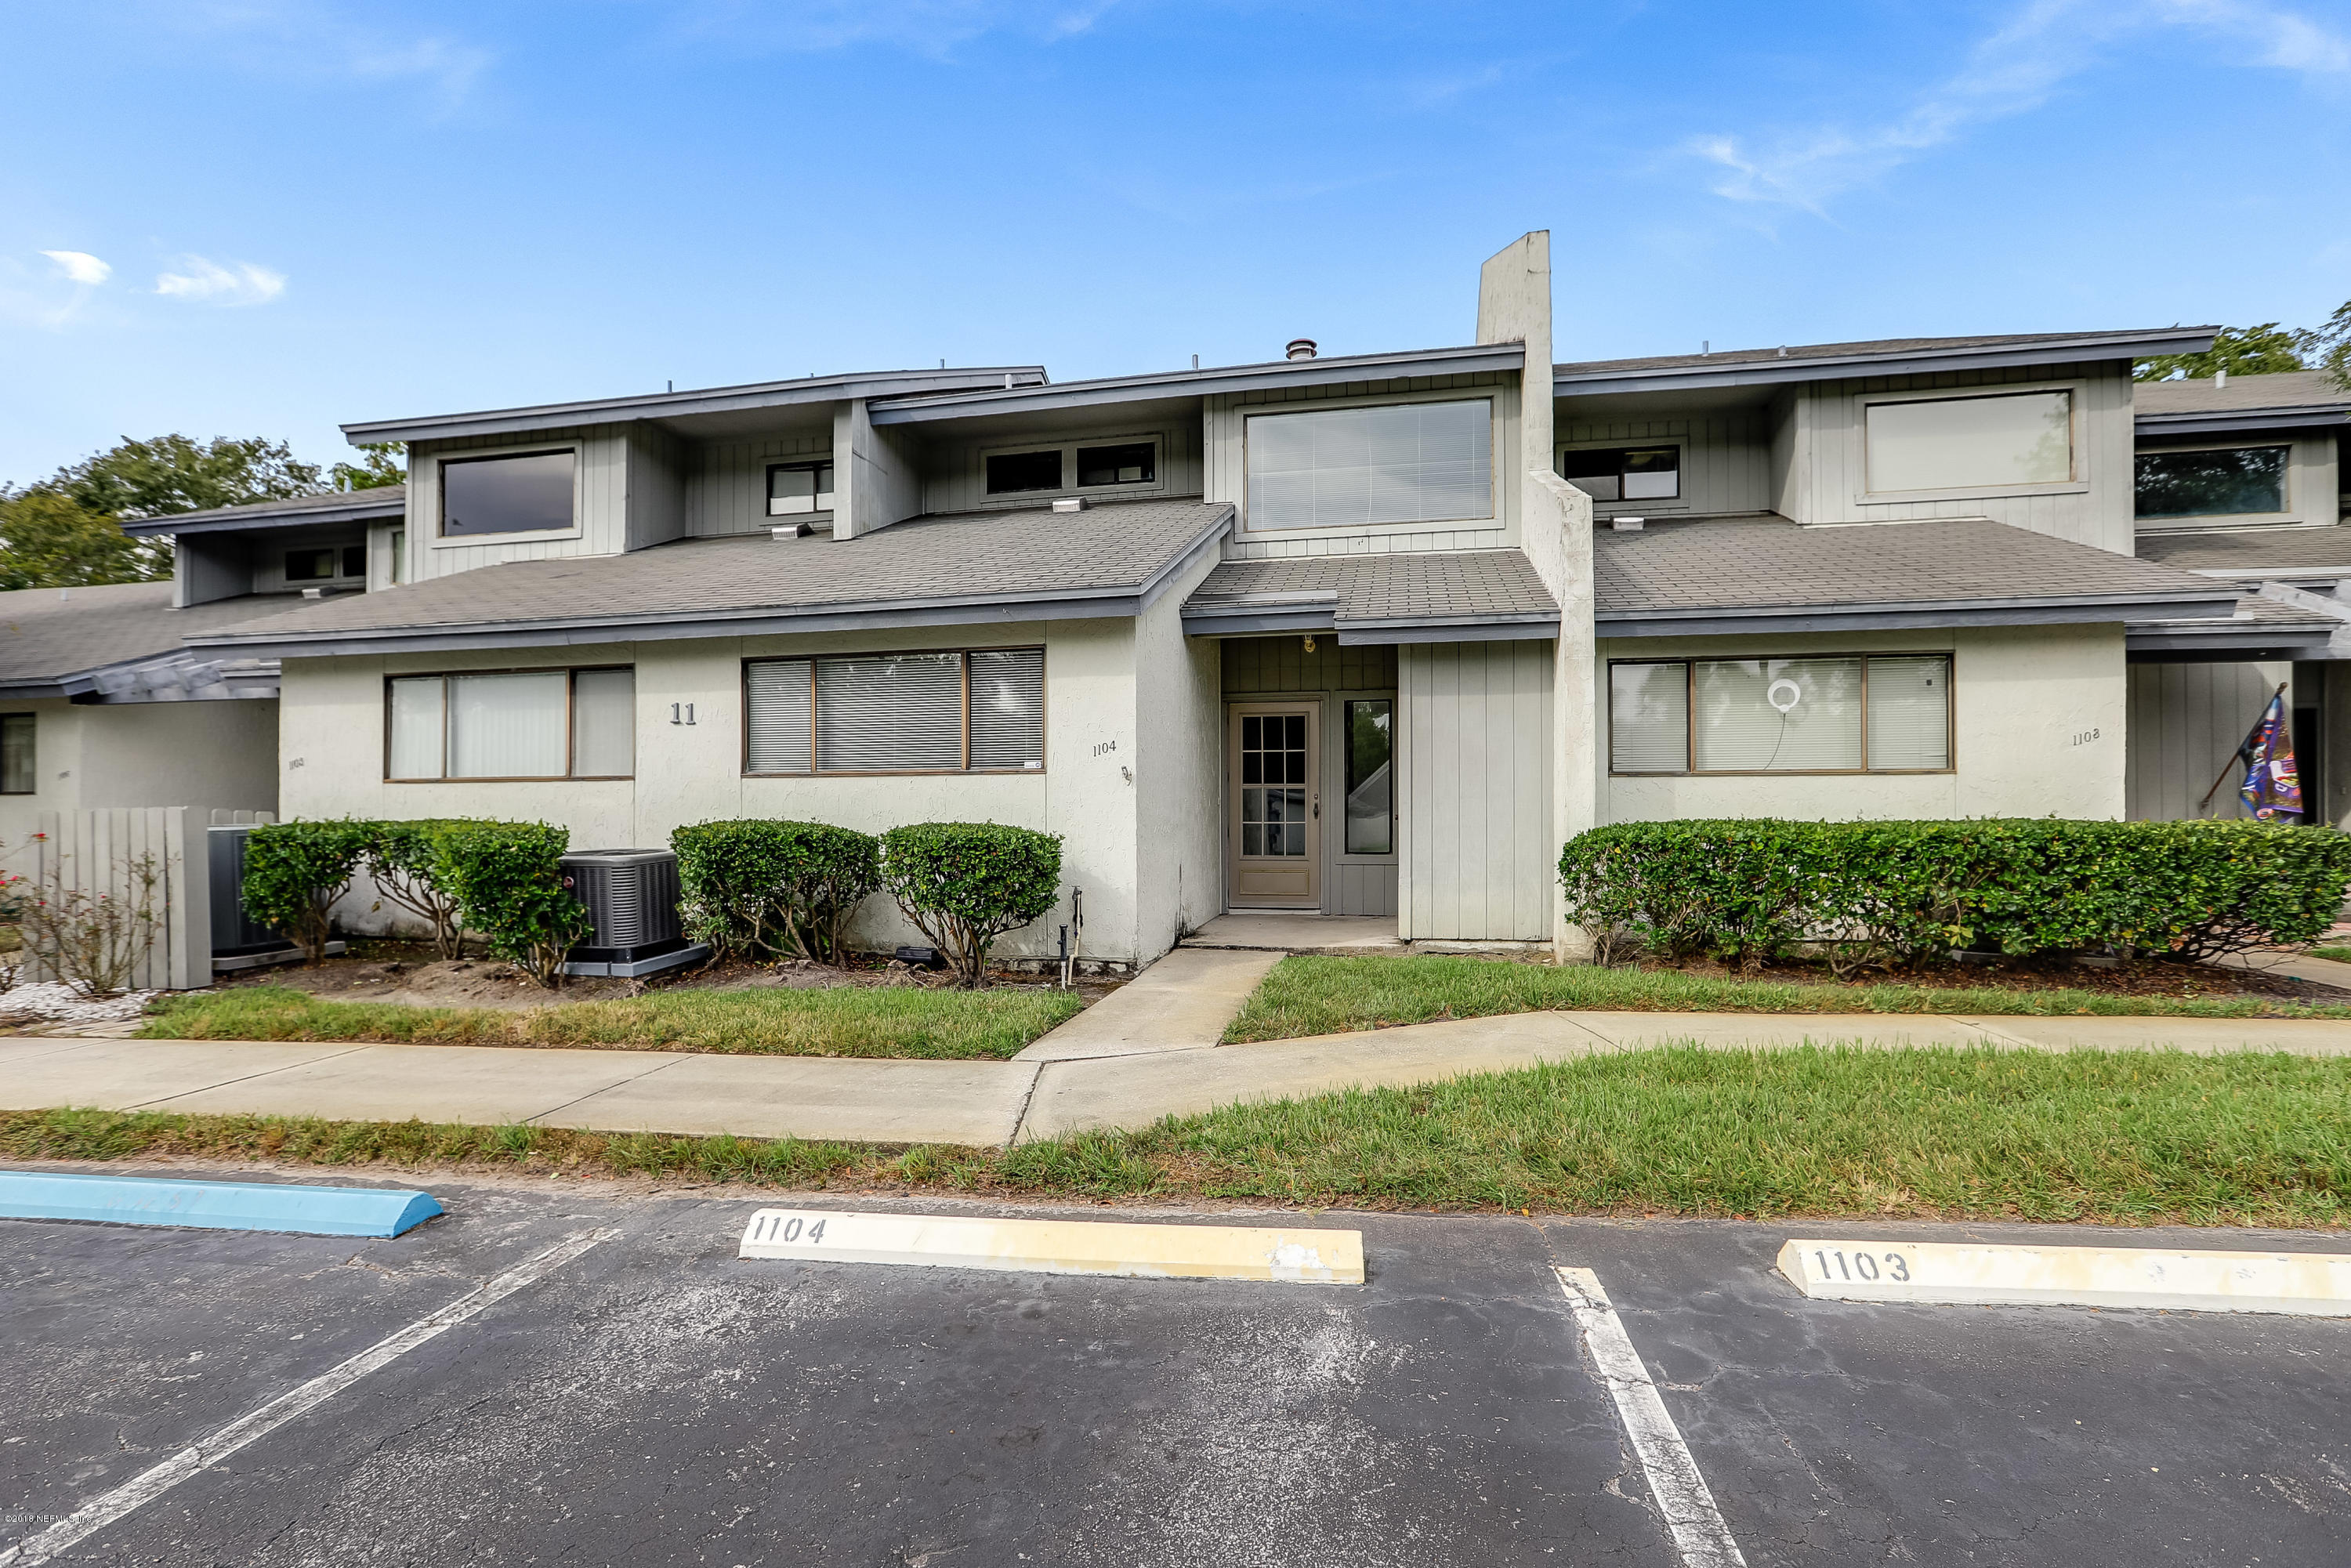 9360 CRAVEN, JACKSONVILLE, FLORIDA 32257, 2 Bedrooms Bedrooms, ,2 BathroomsBathrooms,Residential - condos/townhomes,For sale,CRAVEN,965424